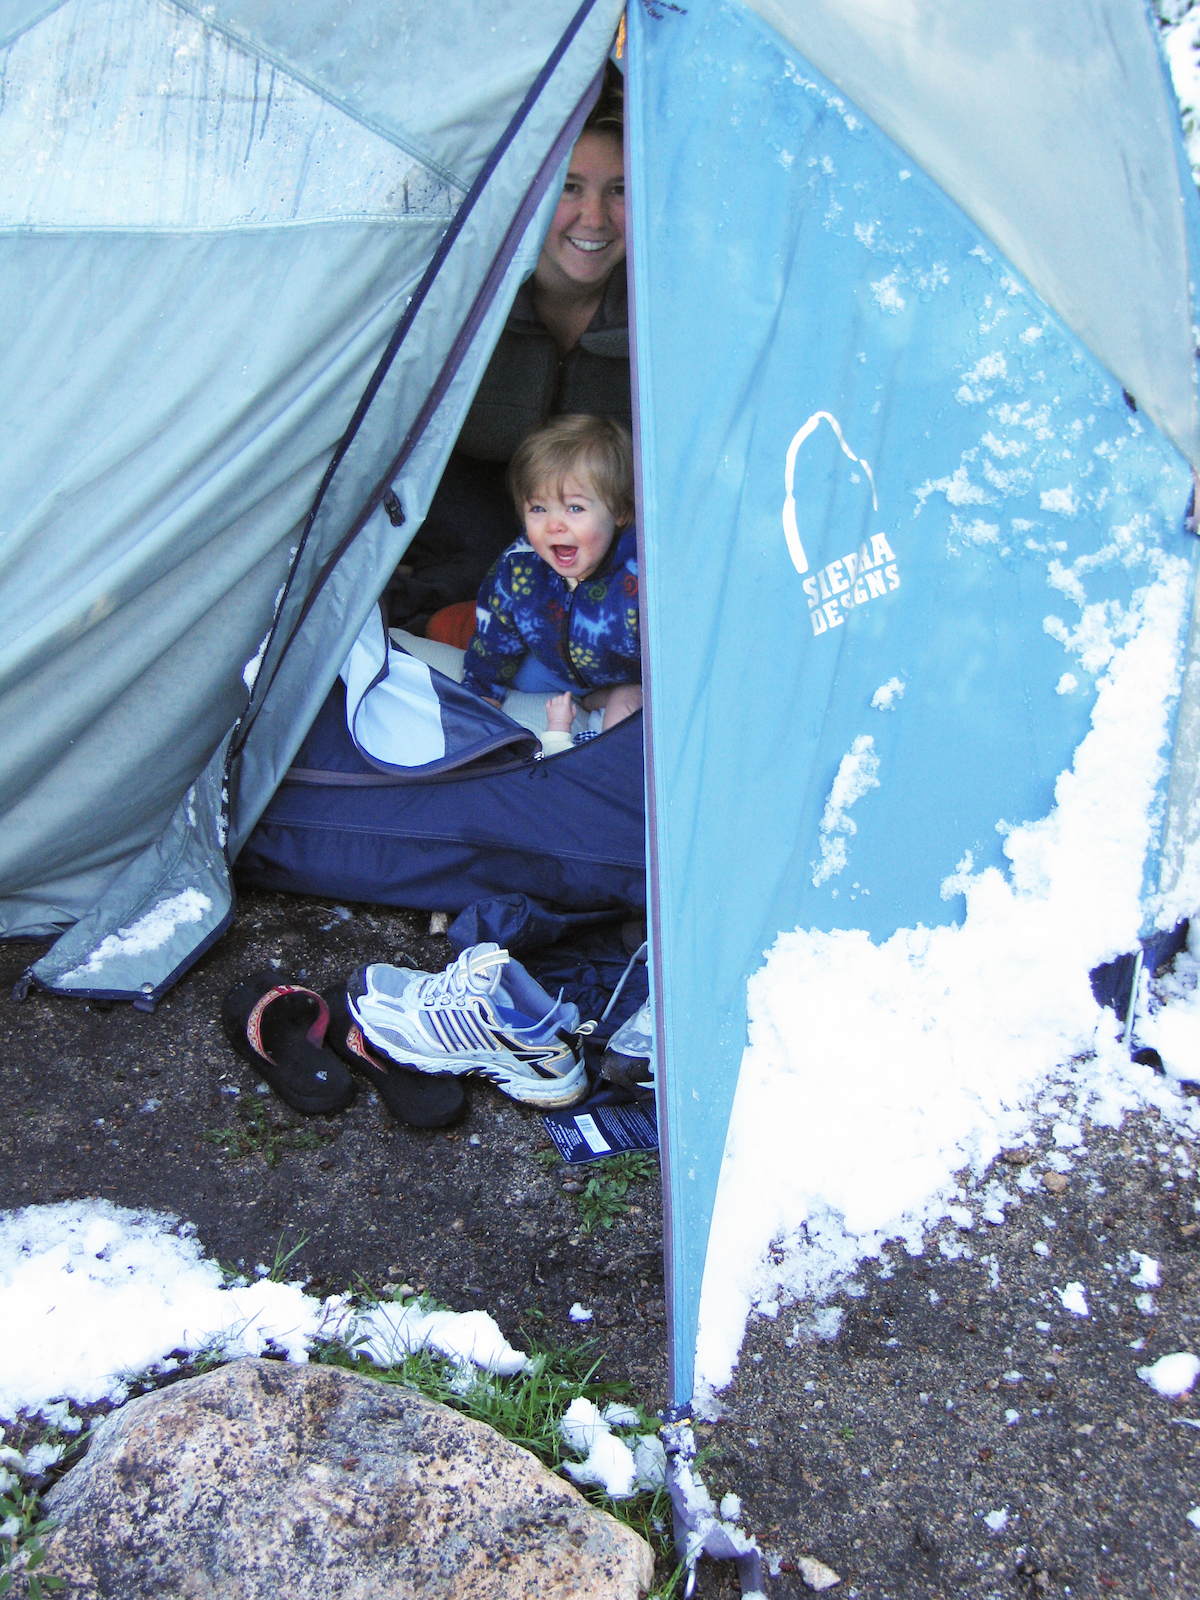 Rain, snow or shine, Abby was always a happy camper and spent over sixty nights in a tent her first year. With the right gear, camping with little ones is so much fun!